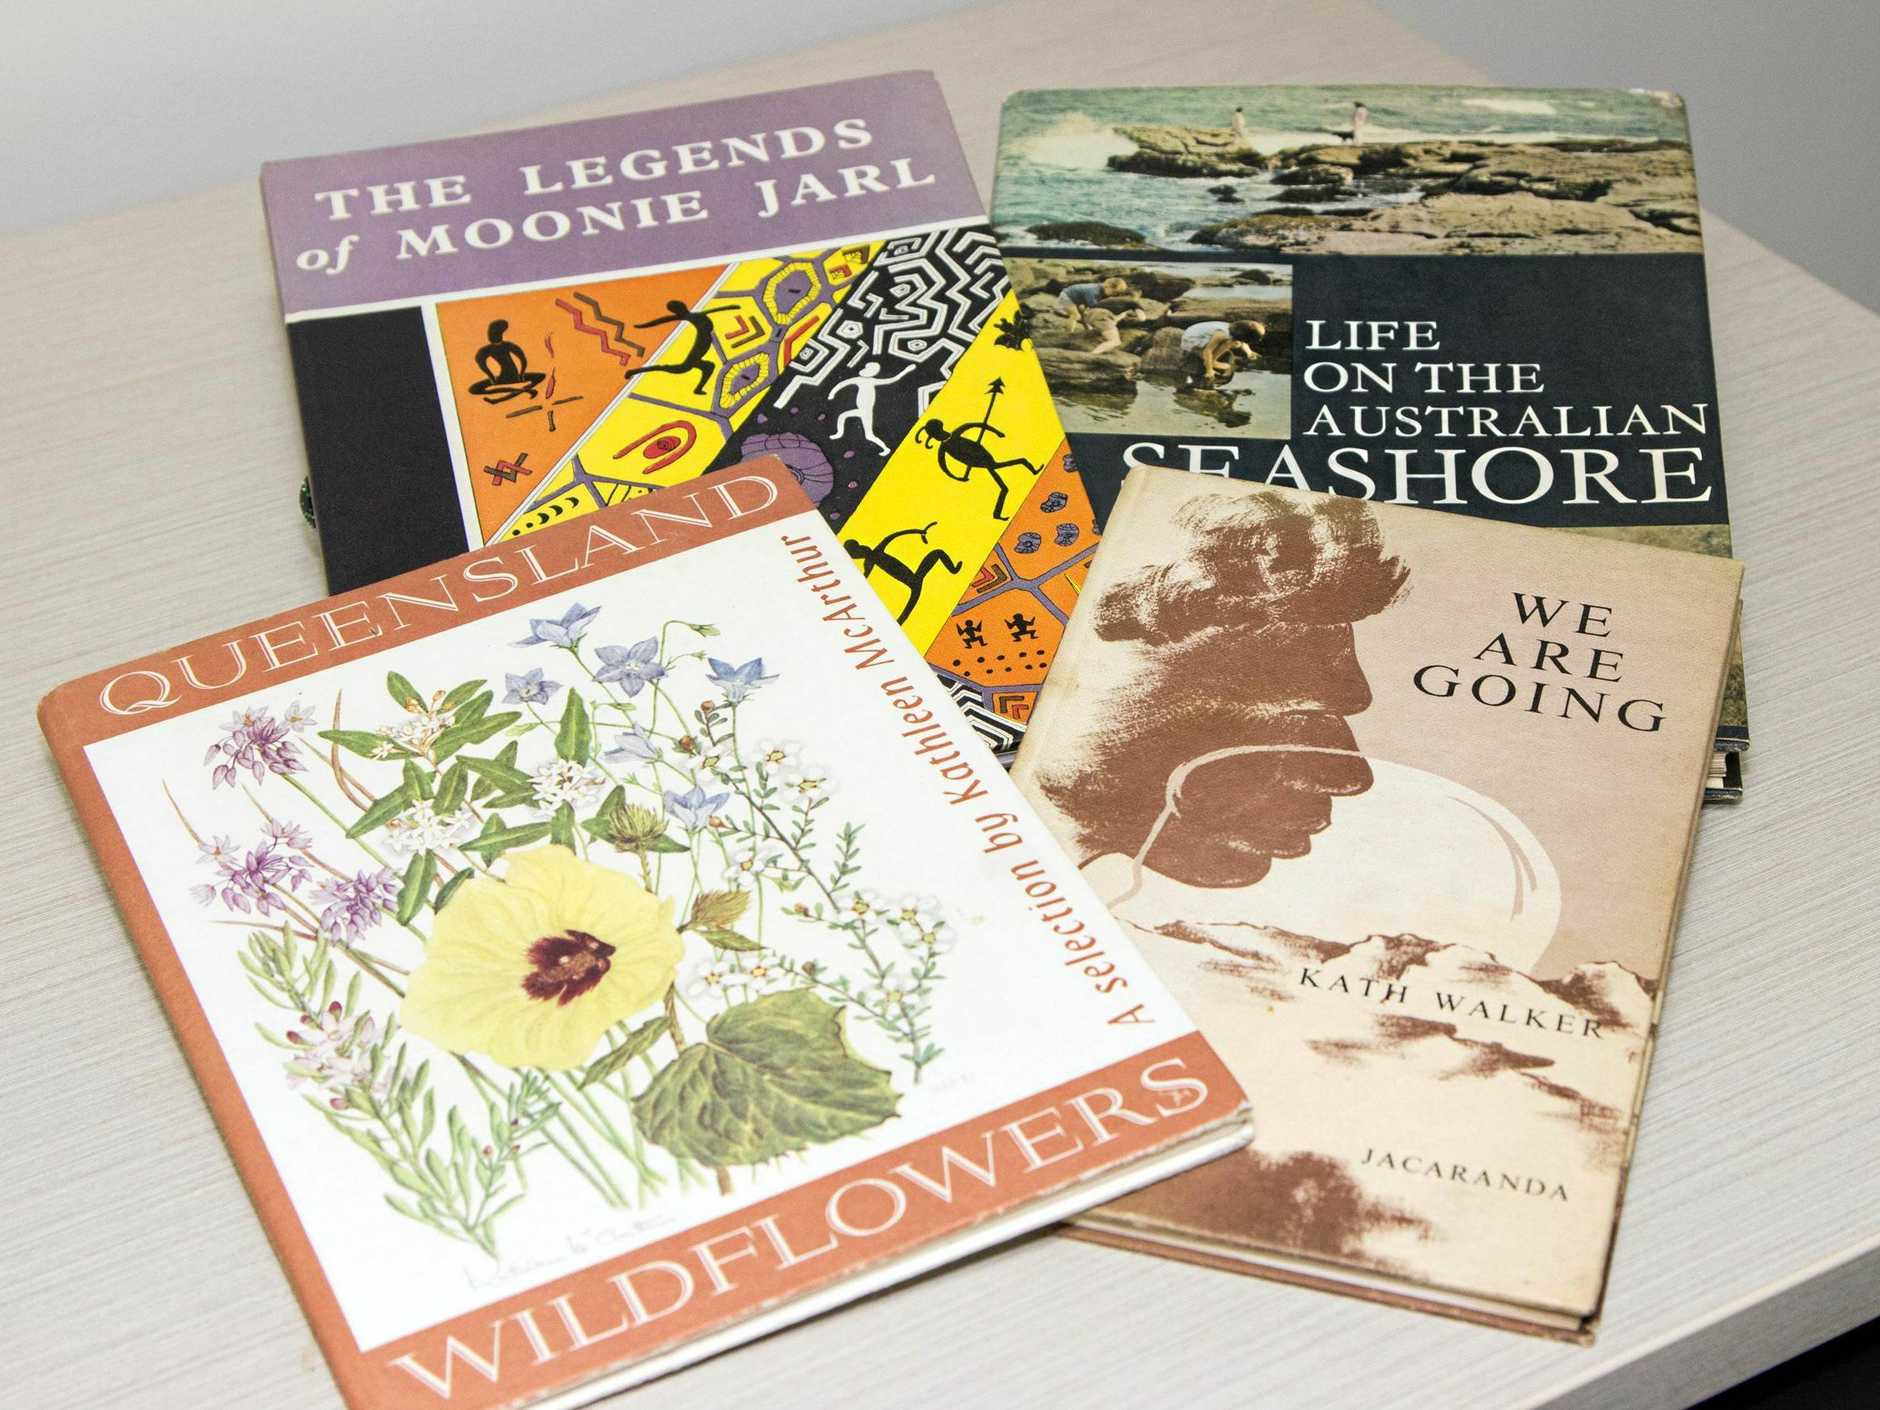 JOURNEY INTO LITERATURE: These four books will feature in a series of library talks across the Fraser Coast from next week.